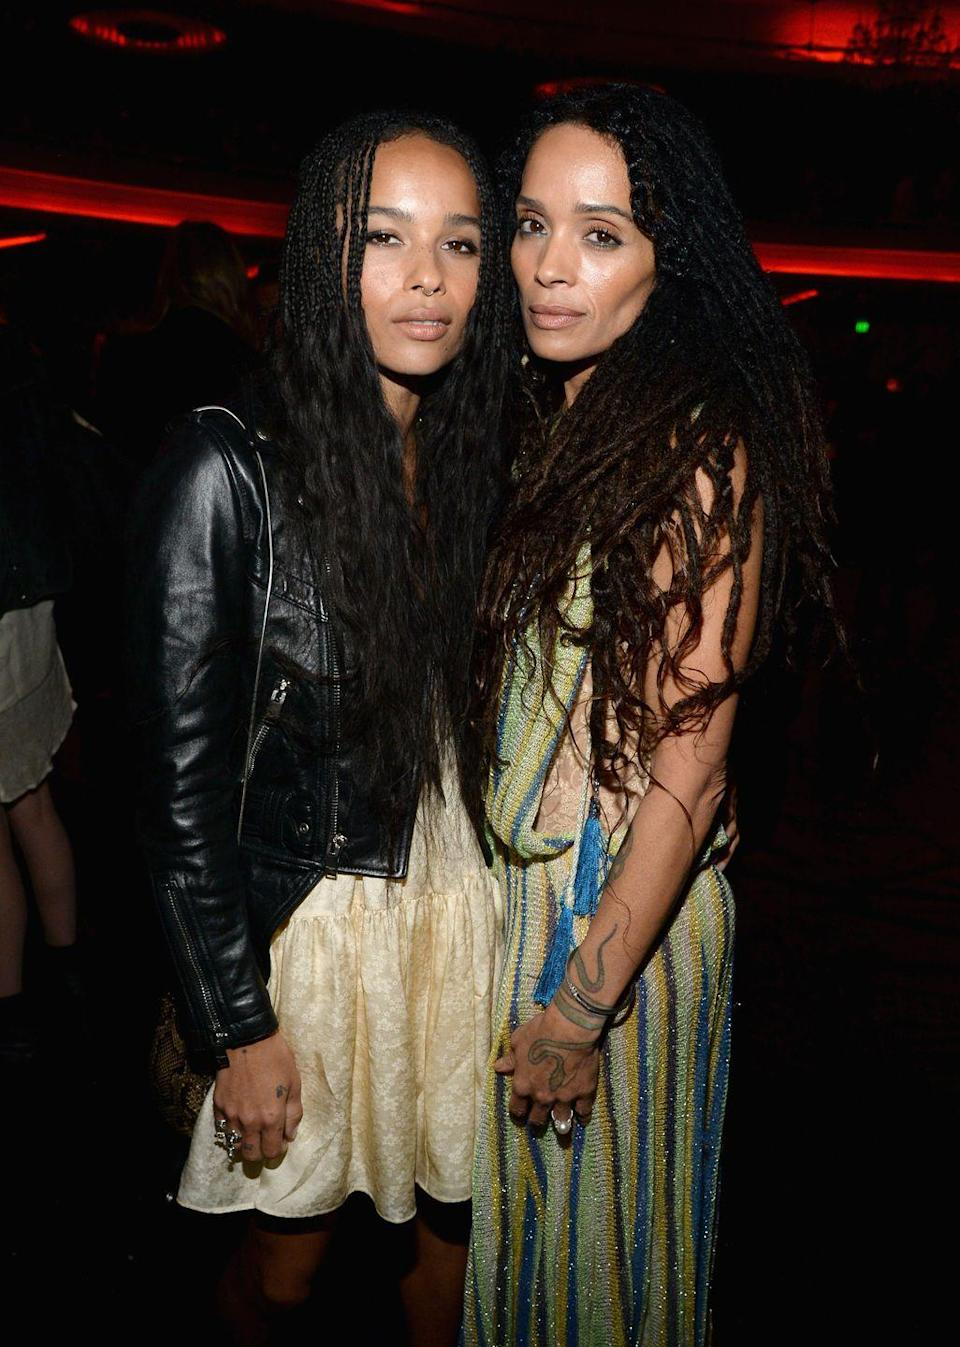 "<p>Age is nothing but a number. Lisa Bonet, 52, and Zoë Kravitz, 31, look more like twins than mother and daughter. Kravitz even re-created her mom's nude <em>Rolling Stone </em>cover <a href=""https://www.harpersbazaar.com/celebrity/latest/a24400093/zoe-kravitz-recreates-lisa-bonet-nude-rolling-stone-photo/"" rel=""nofollow noopener"" target=""_blank"" data-ylk=""slk:for Halloween 2018"" class=""link rapid-noclick-resp"">for Halloween 2018</a>, and the resemblance is uncanny. </p>"